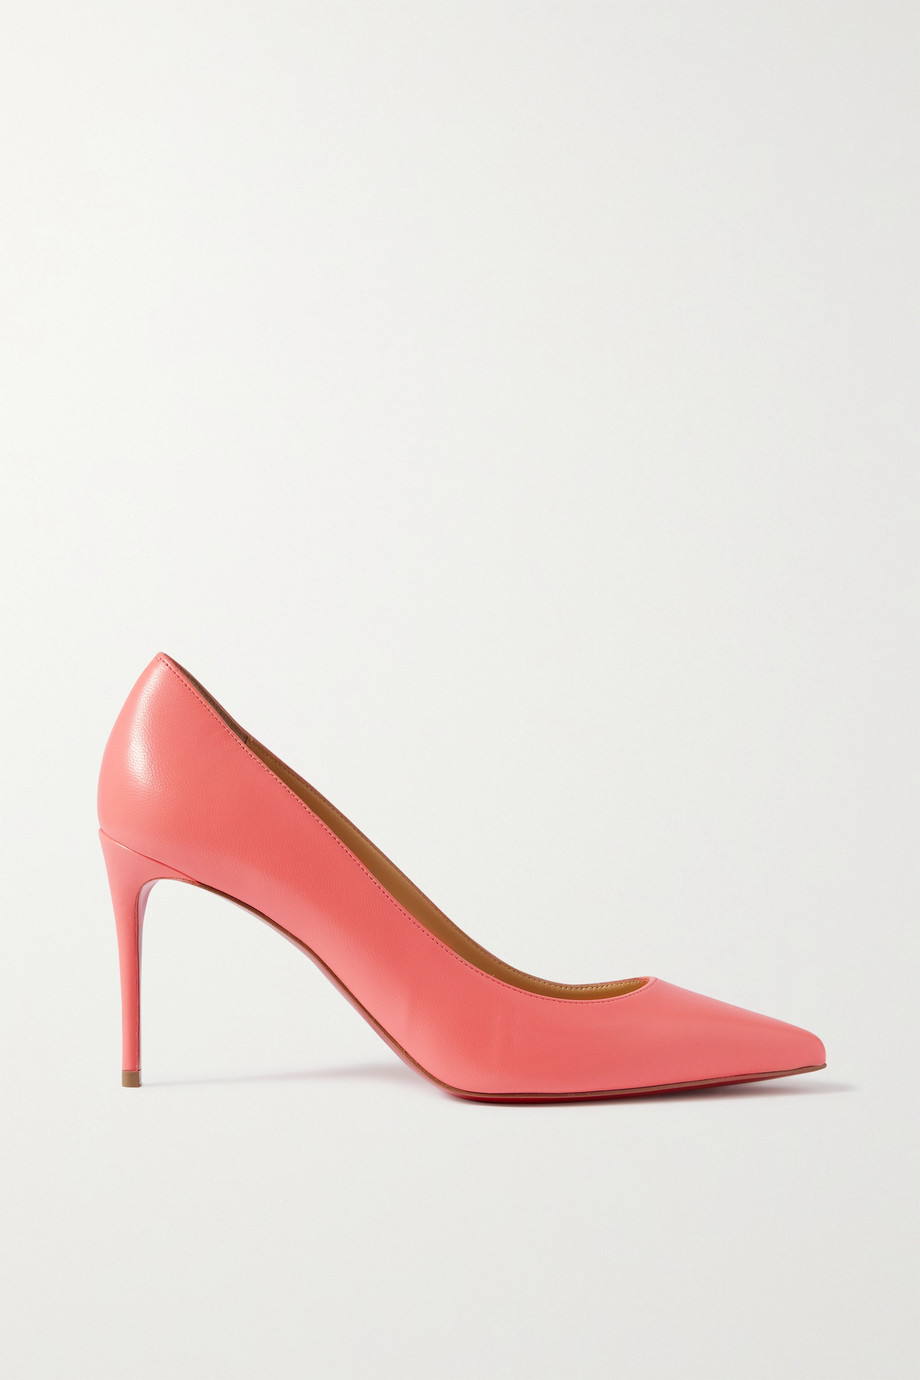 CHRISTIAN LOUBOUTIN Kate 85 leather pumps